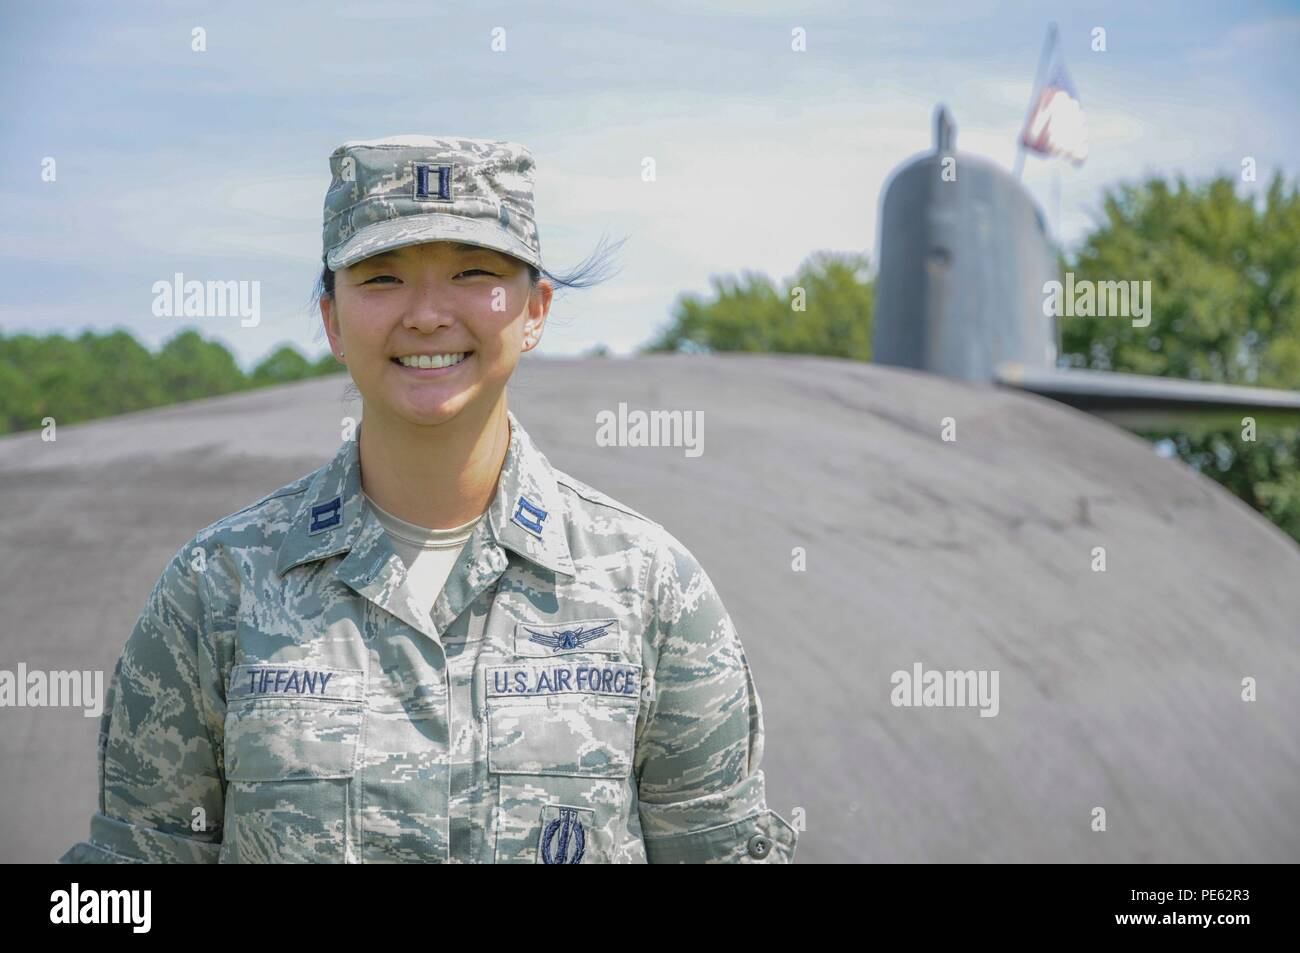 U.S. Air Force Capt. Jessica Tiffany poses for a photo at Naval Submarine Base Kings Bay, Ga., Sept. 22, 2015. Tiffany is one of the first four Air Force intercontinental ballistic missile (ICBM) officers selected to serve with U.S. Navy Submarine Forces (SUBFOR) ballistic missile submarine (SSBN) units through the Striker Trident nuclear officer exchange program. In May, she left the 341st Missile Wing at Malmstrom Air Force Base, Mont., to begin a three-year assignment as a strategic targeting assistant in the strategic forces, nuclear weapons and force protection directorate at Commander, S - Stock Image